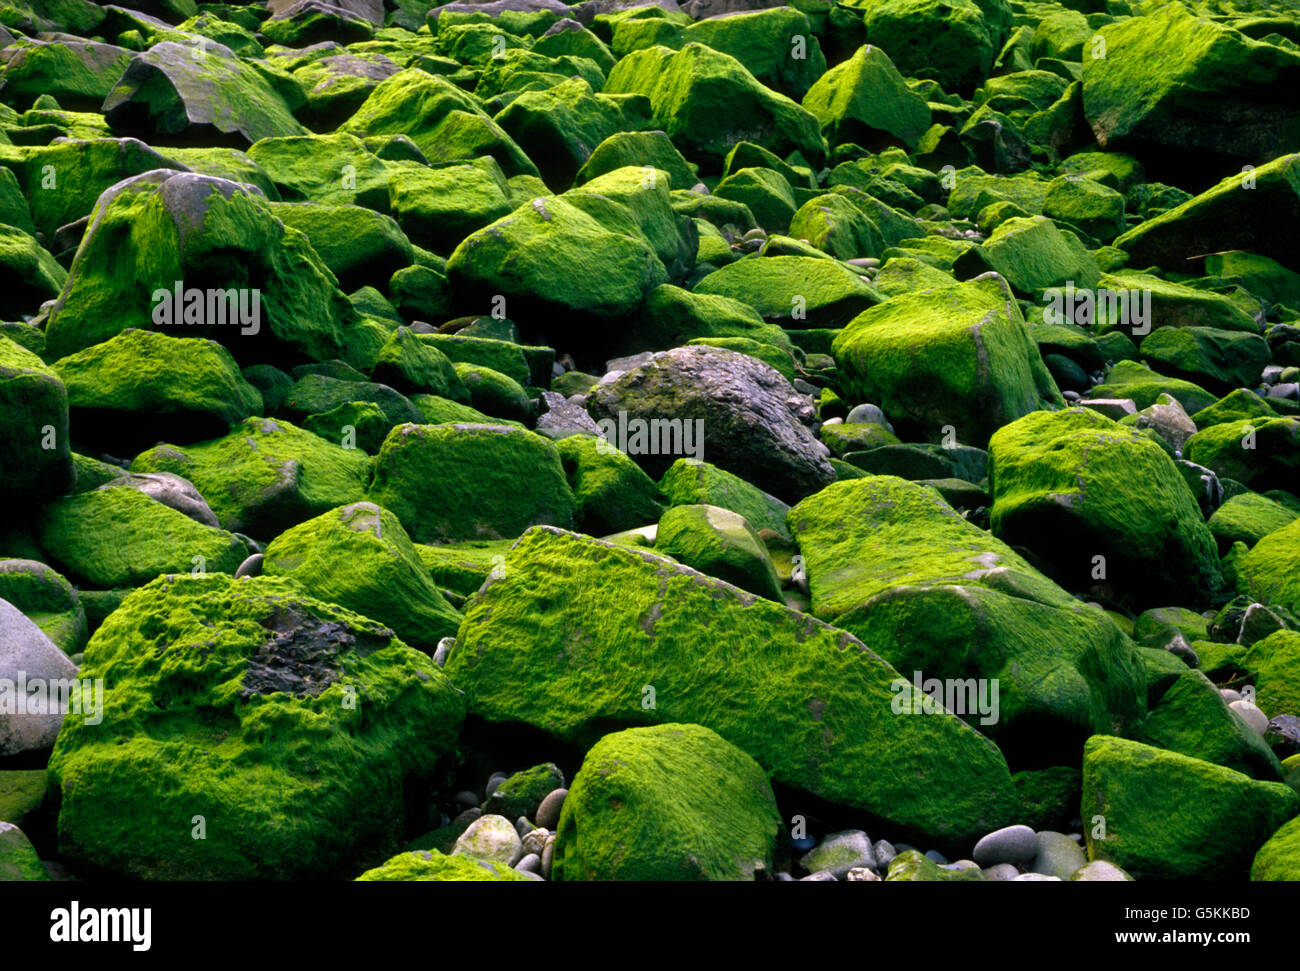 River rocks covered with green moss & lichen, Quillayute River Delta, Pacific Ocean, Olympic Peninsula, La Push, - Stock Image